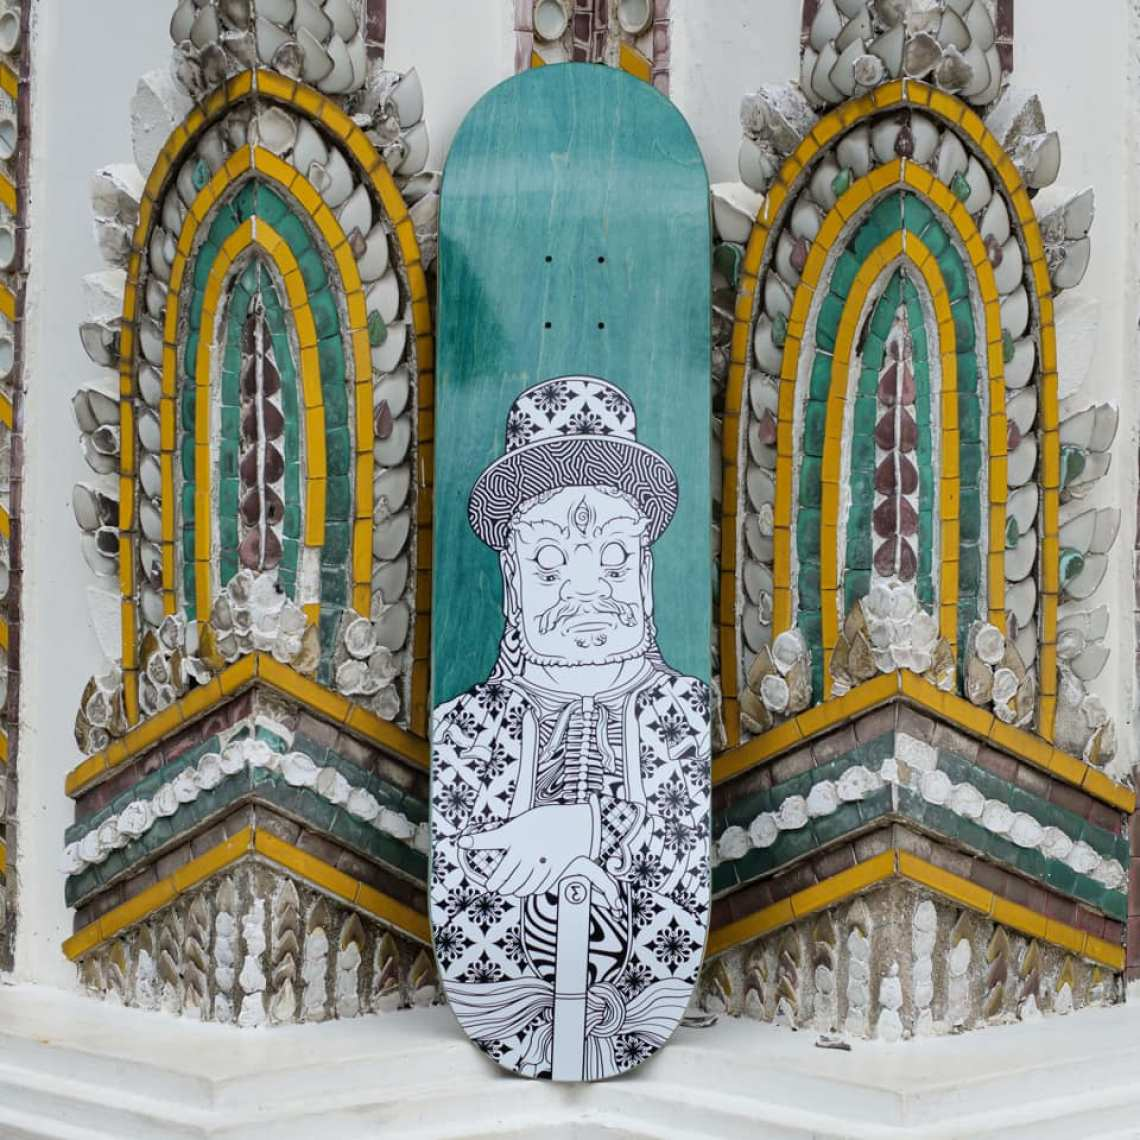 Stone Giants Deck Series By TR For Preduce Skateboards 6